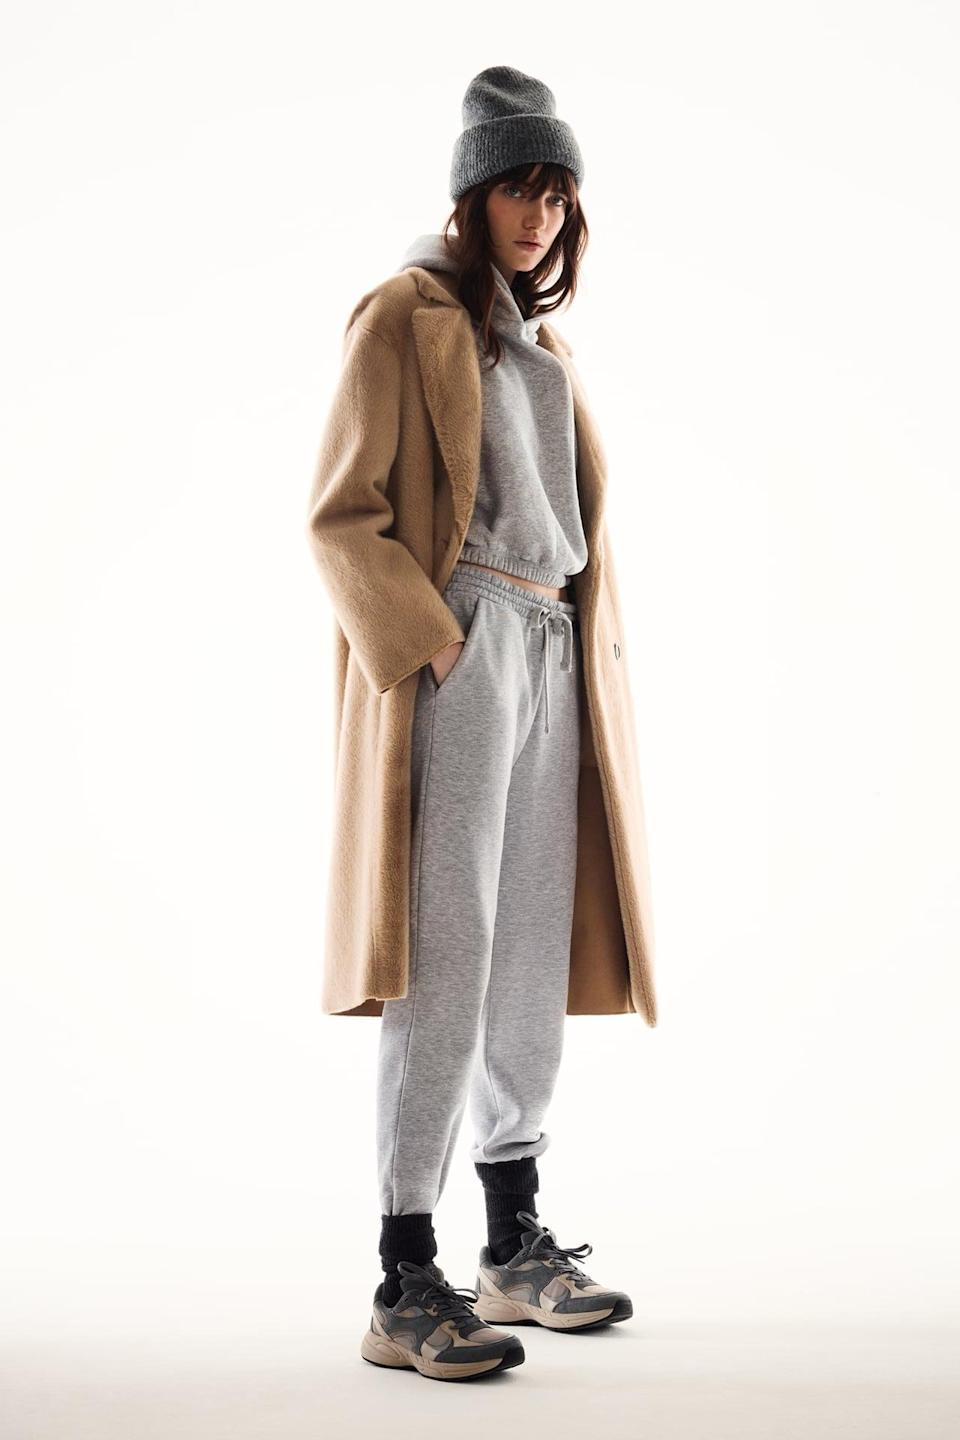 <p>You can't go wrong with this classic <span>Zara Jogging Pants</span> ($30) and <span>Cropped Hooded Sweatshirt</span> ($26).</p>